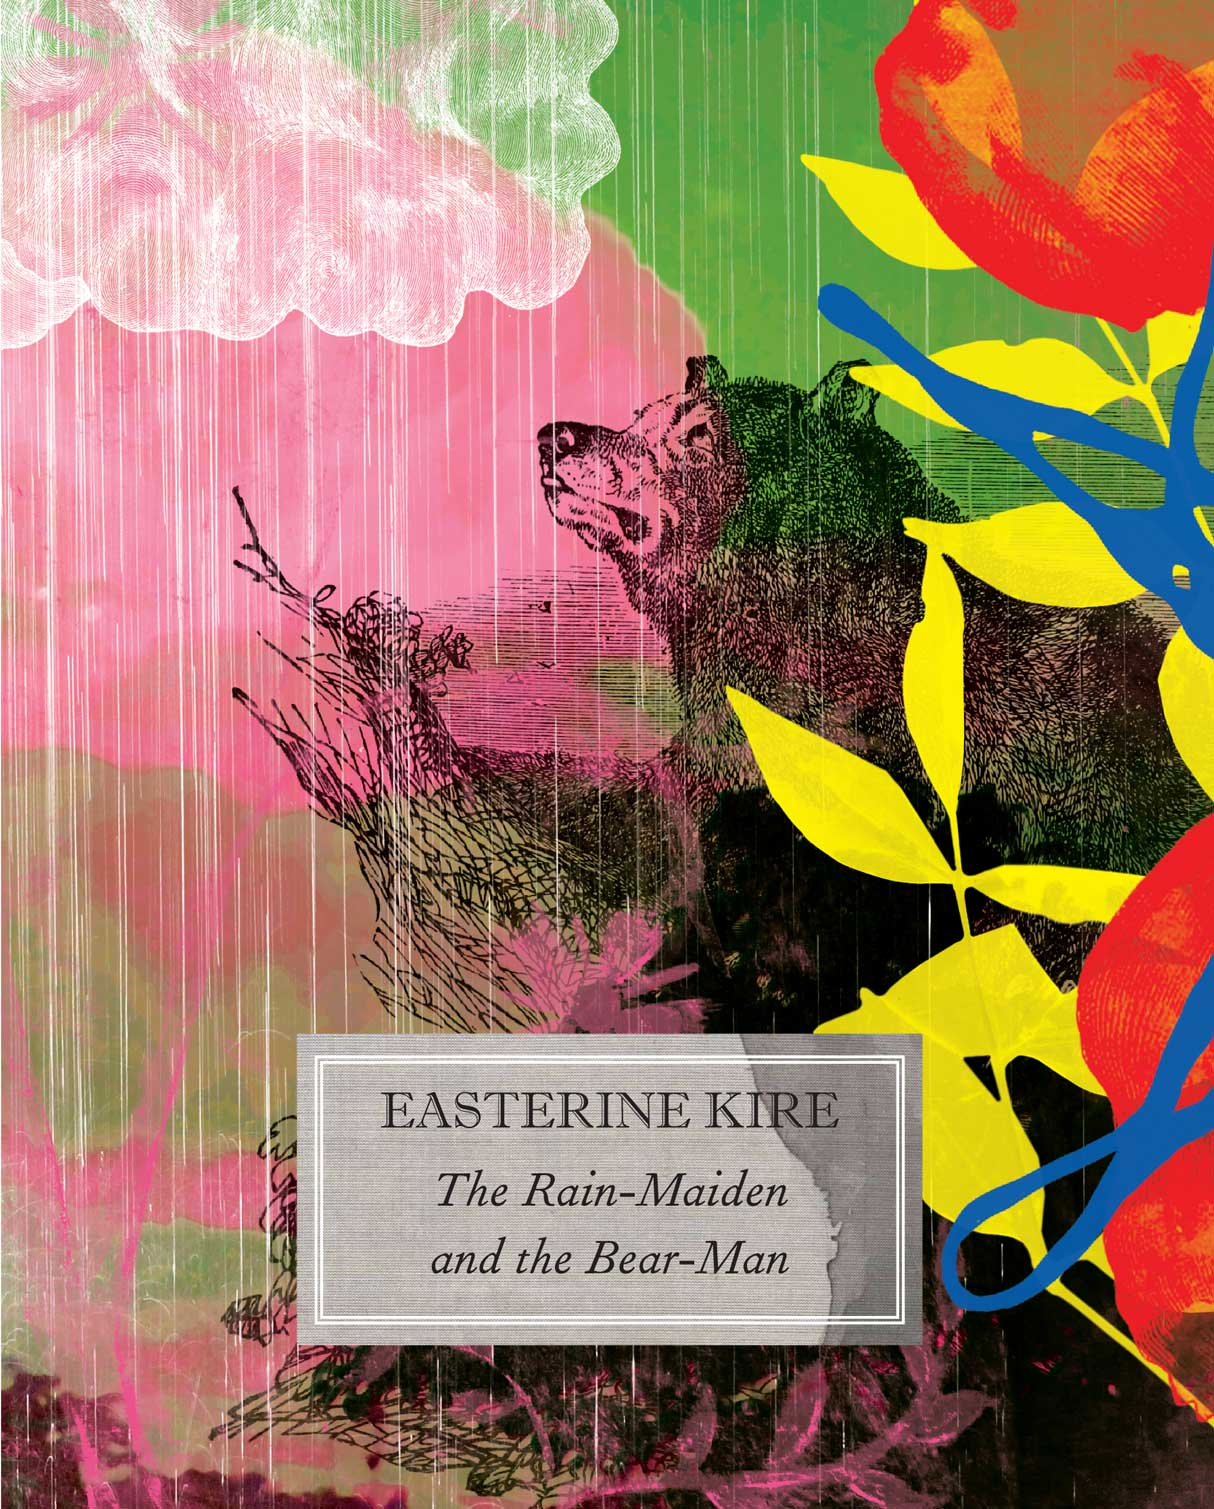 The Rain-Maiden and the Bear-Man by Easterine Kire | Seagull Books